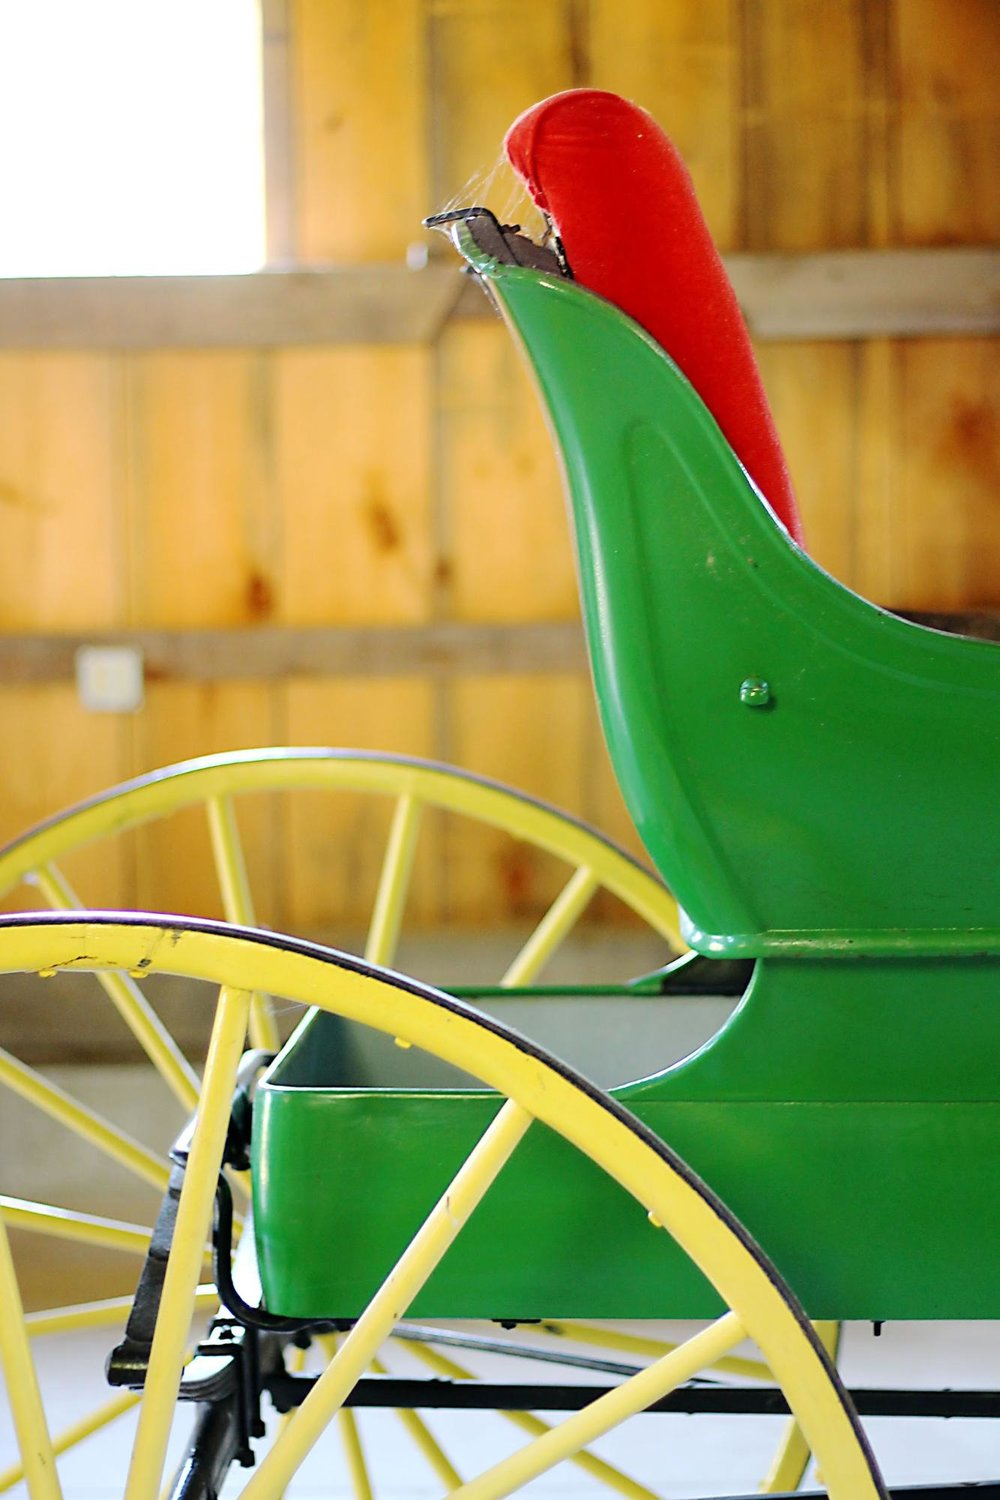 old green and yellow carriage